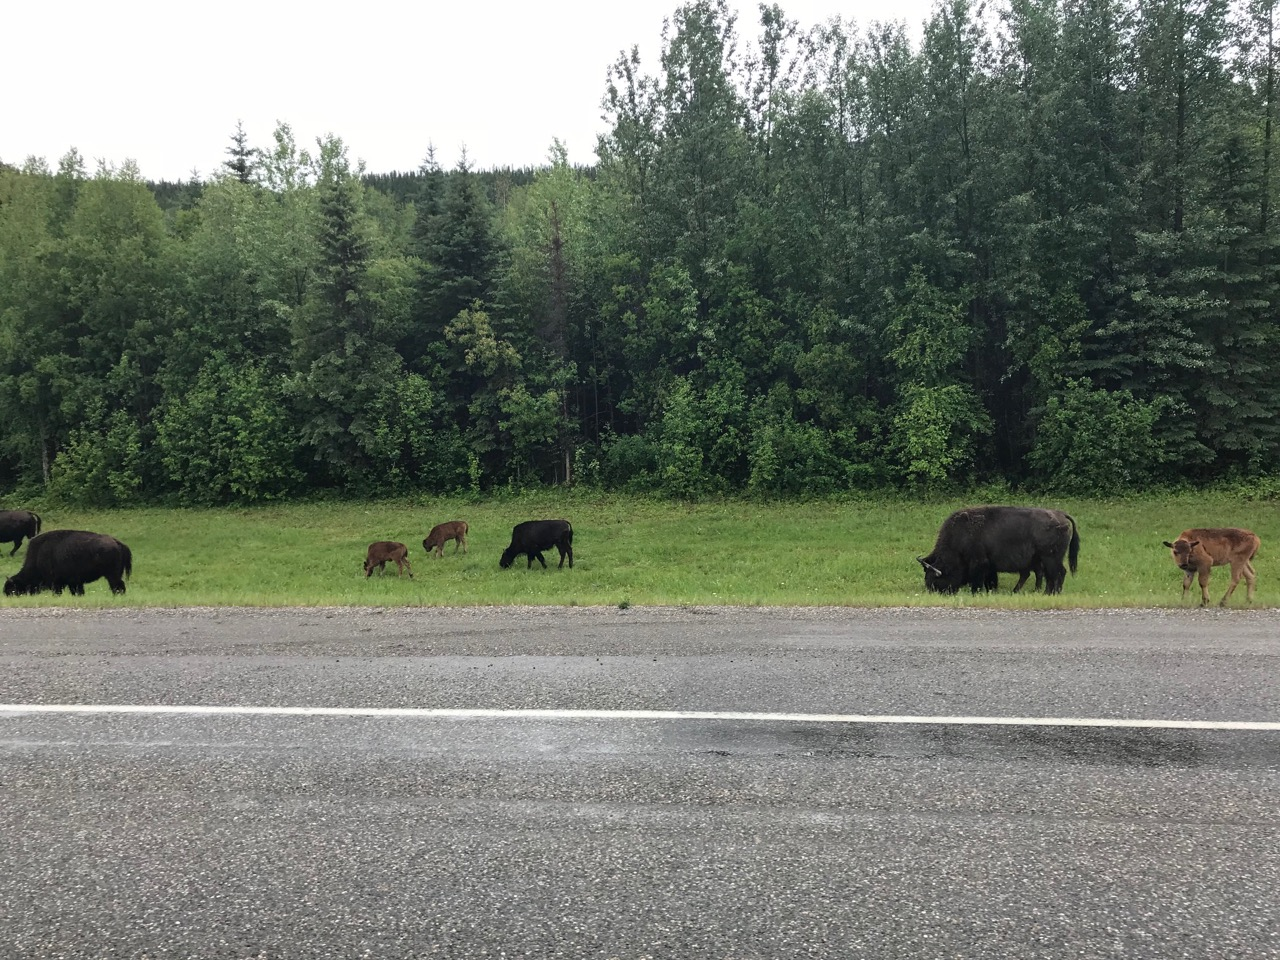 These are Wood Bison, smaller then their plains cousins but still big. This herd had many babies!